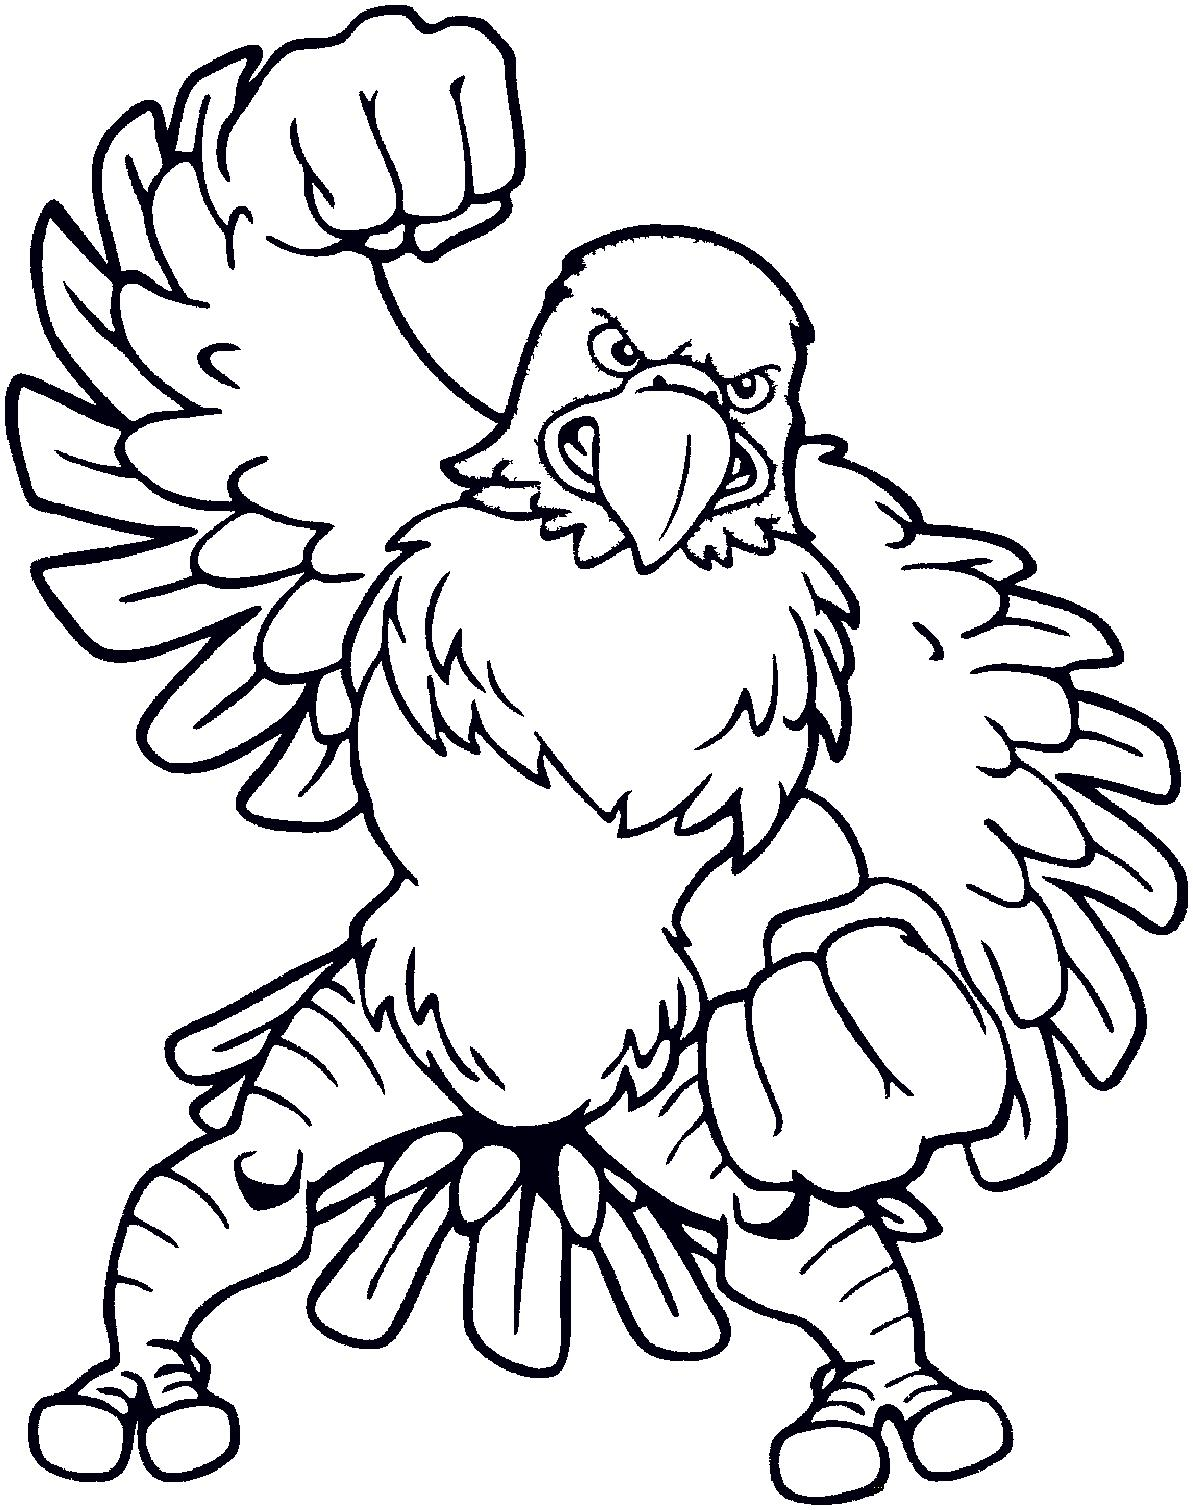 1193x1510 Bald Eagle Coloring Pages Cartoon